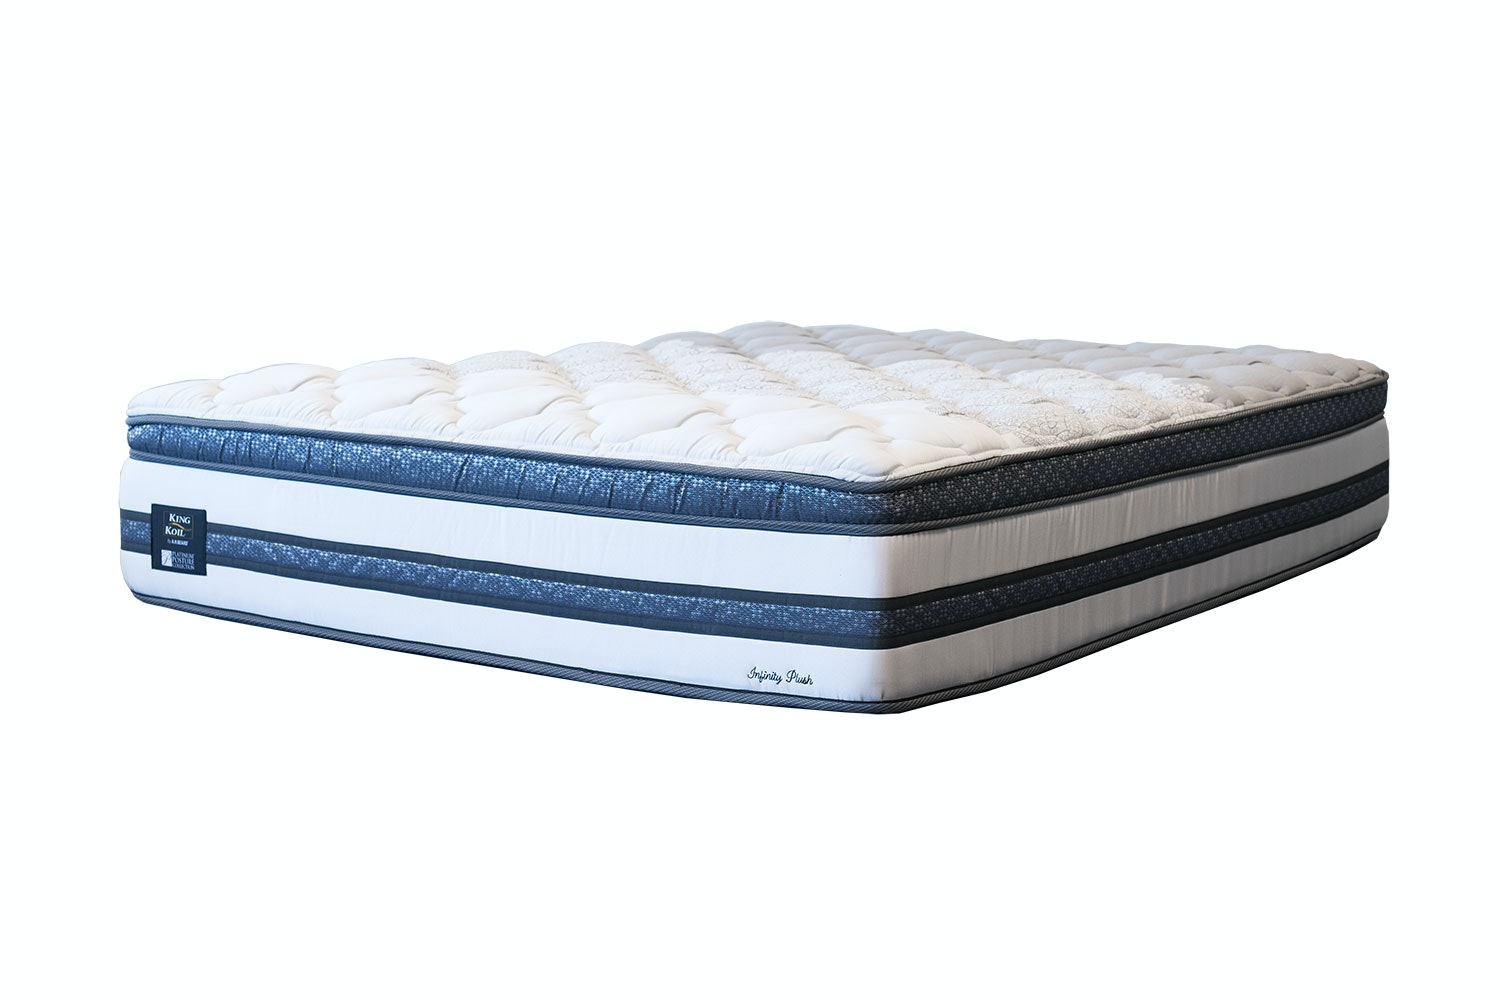 Infinity Plush Long Single Mattress by King Koil